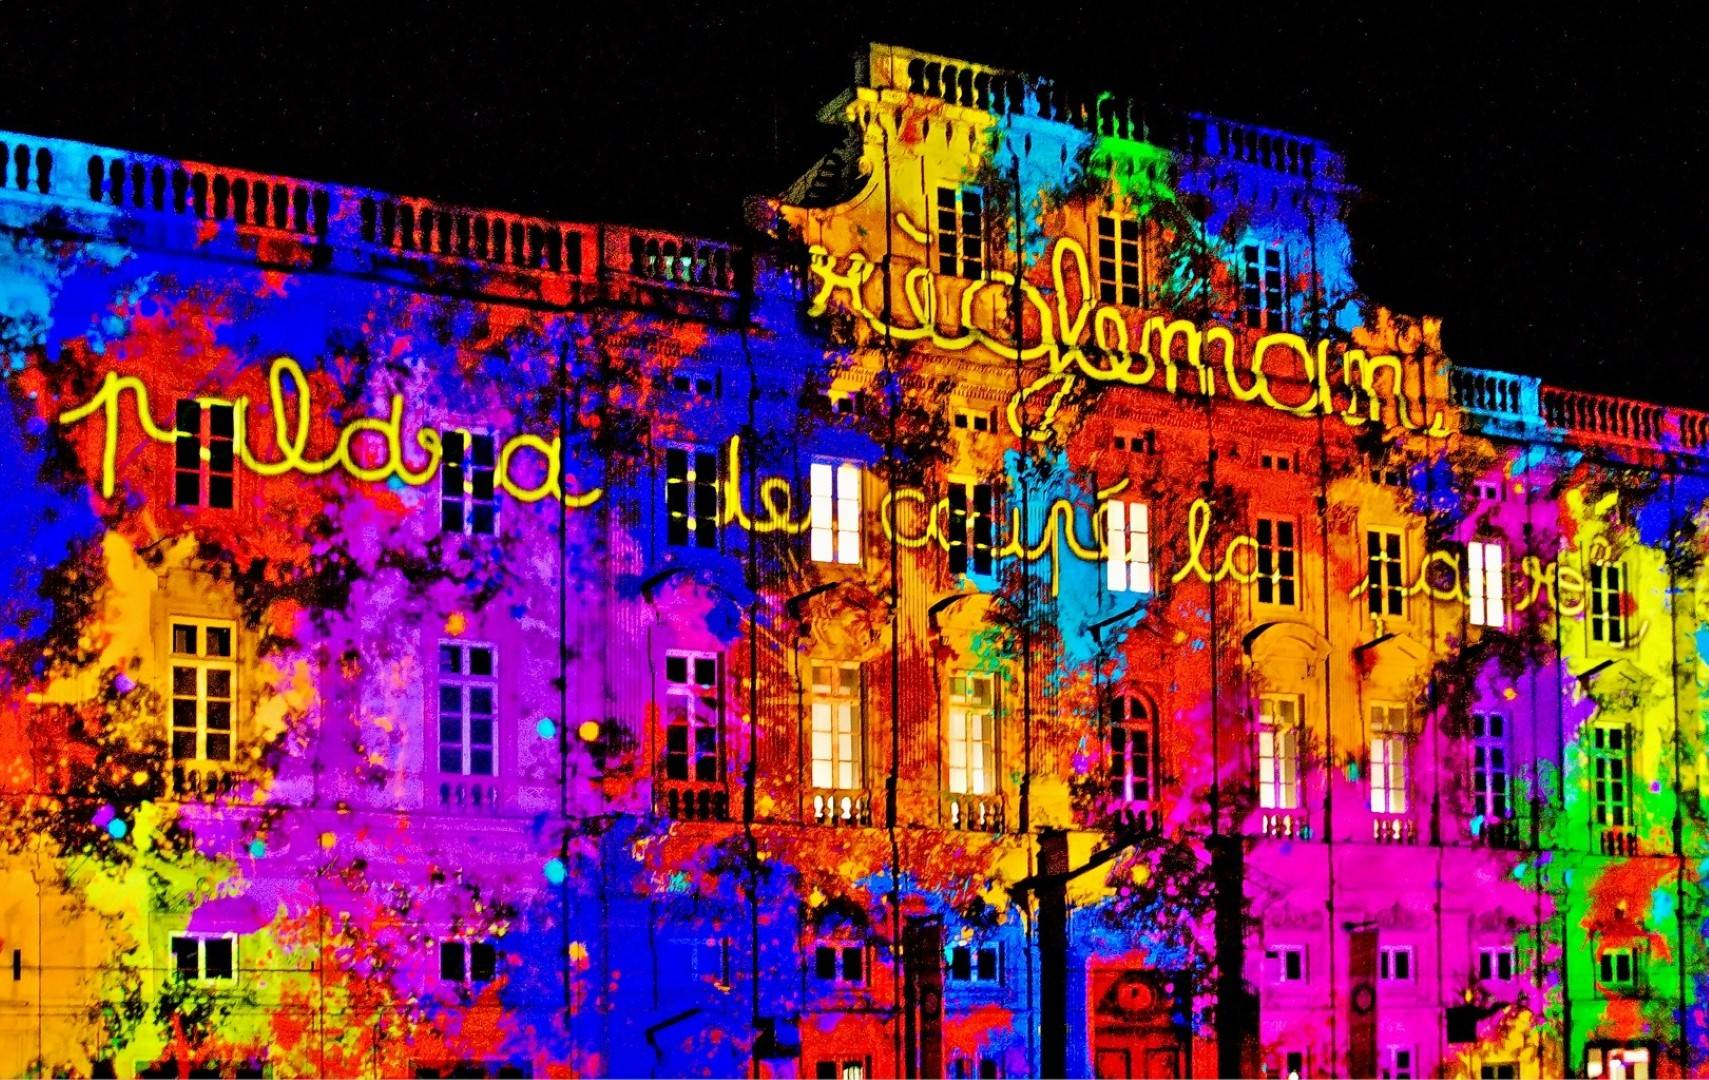 Lyon-Festival-Of-Light-dramatic-lighting